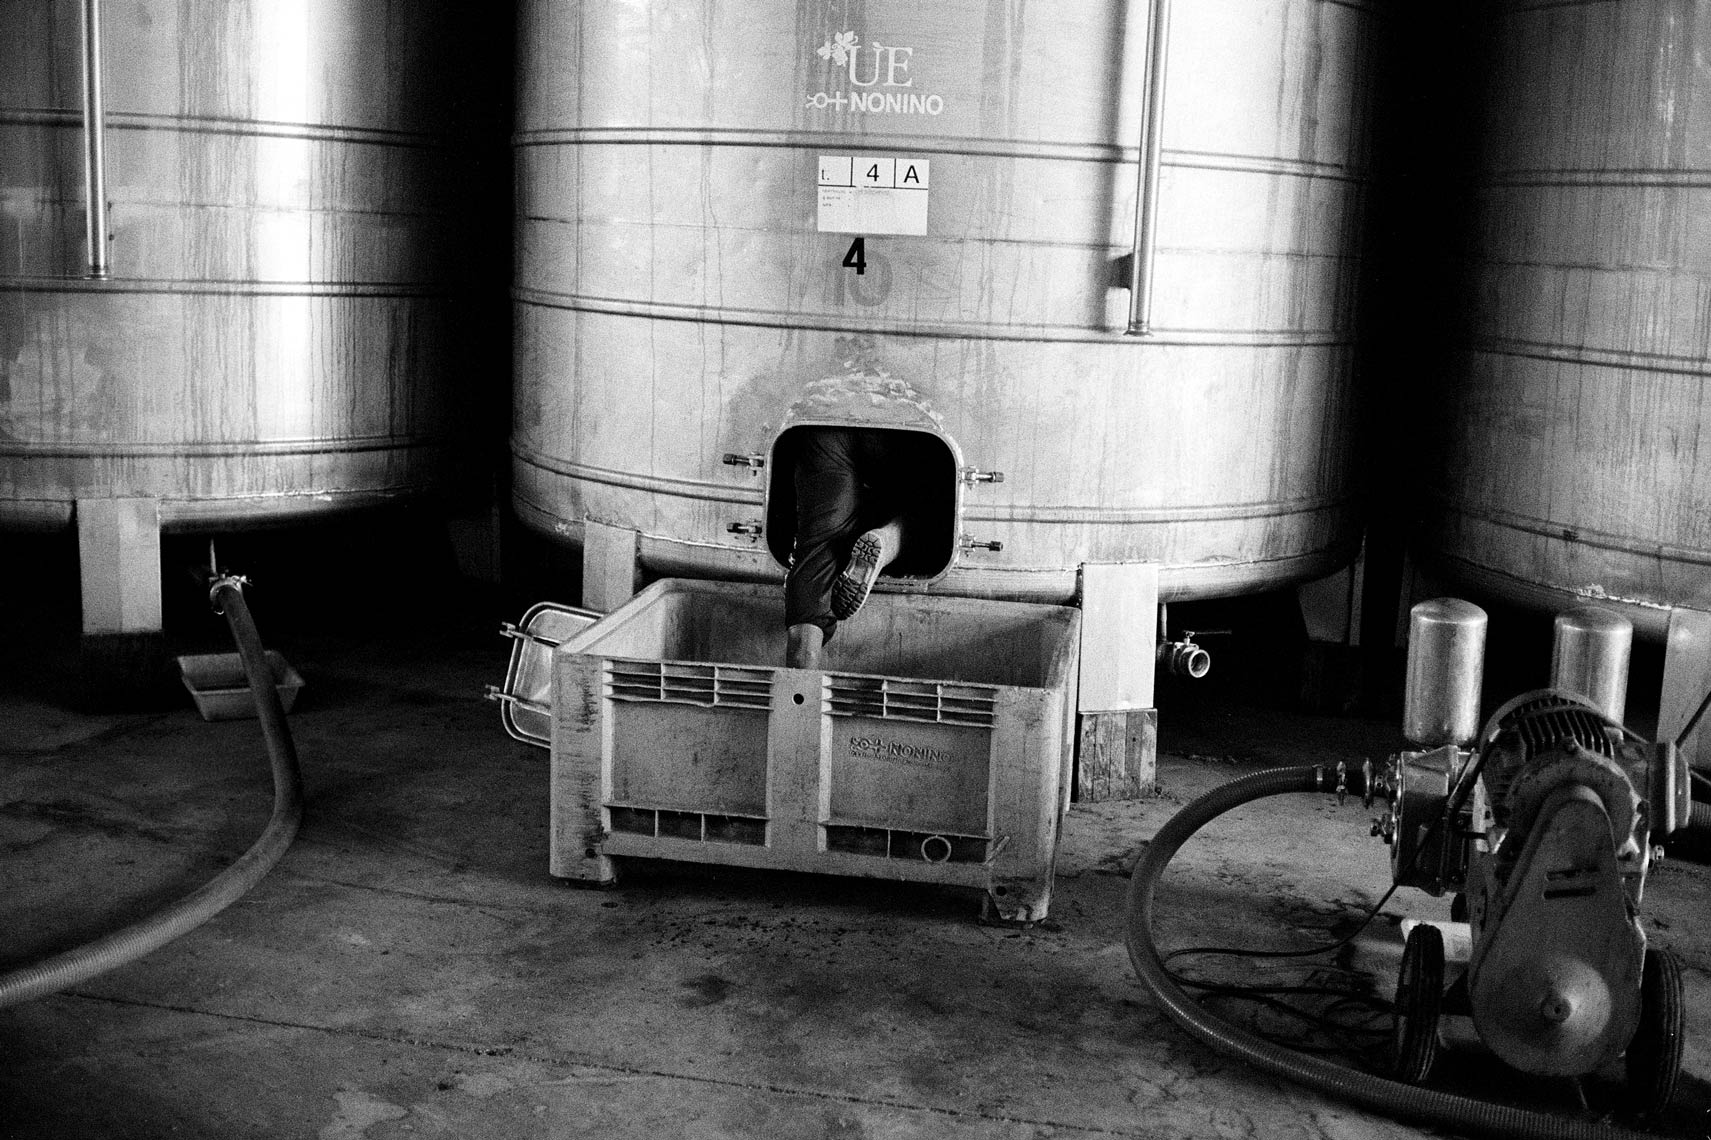 Vat in distillery, Italy